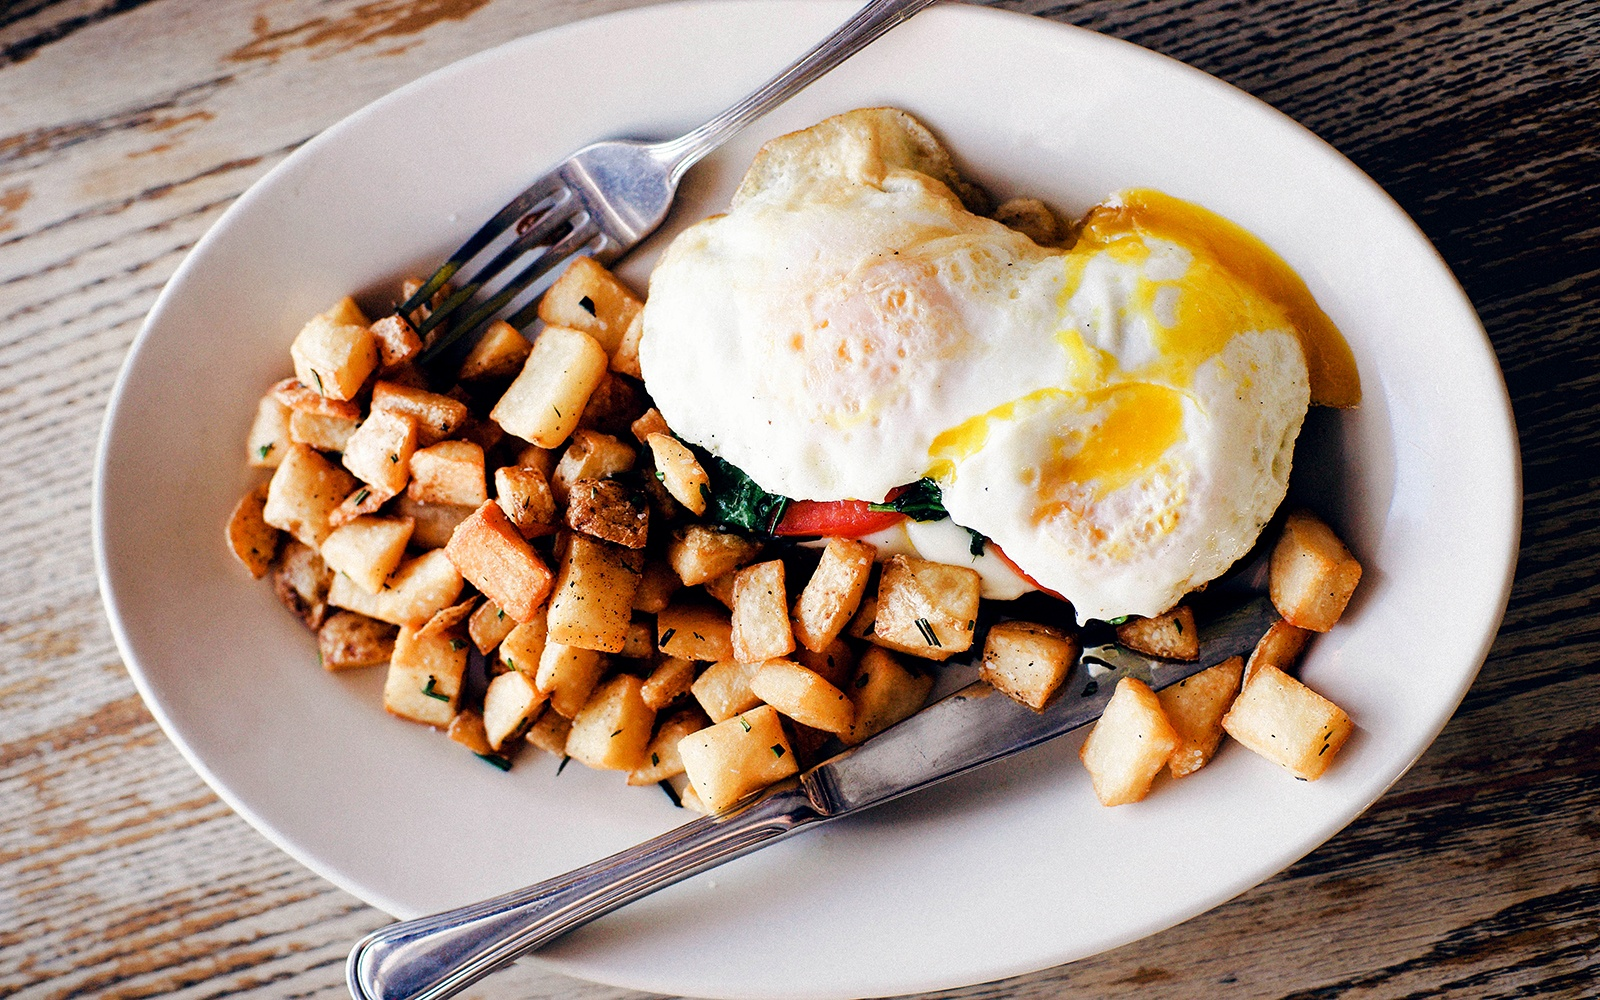 foodie brunch places in Dallas